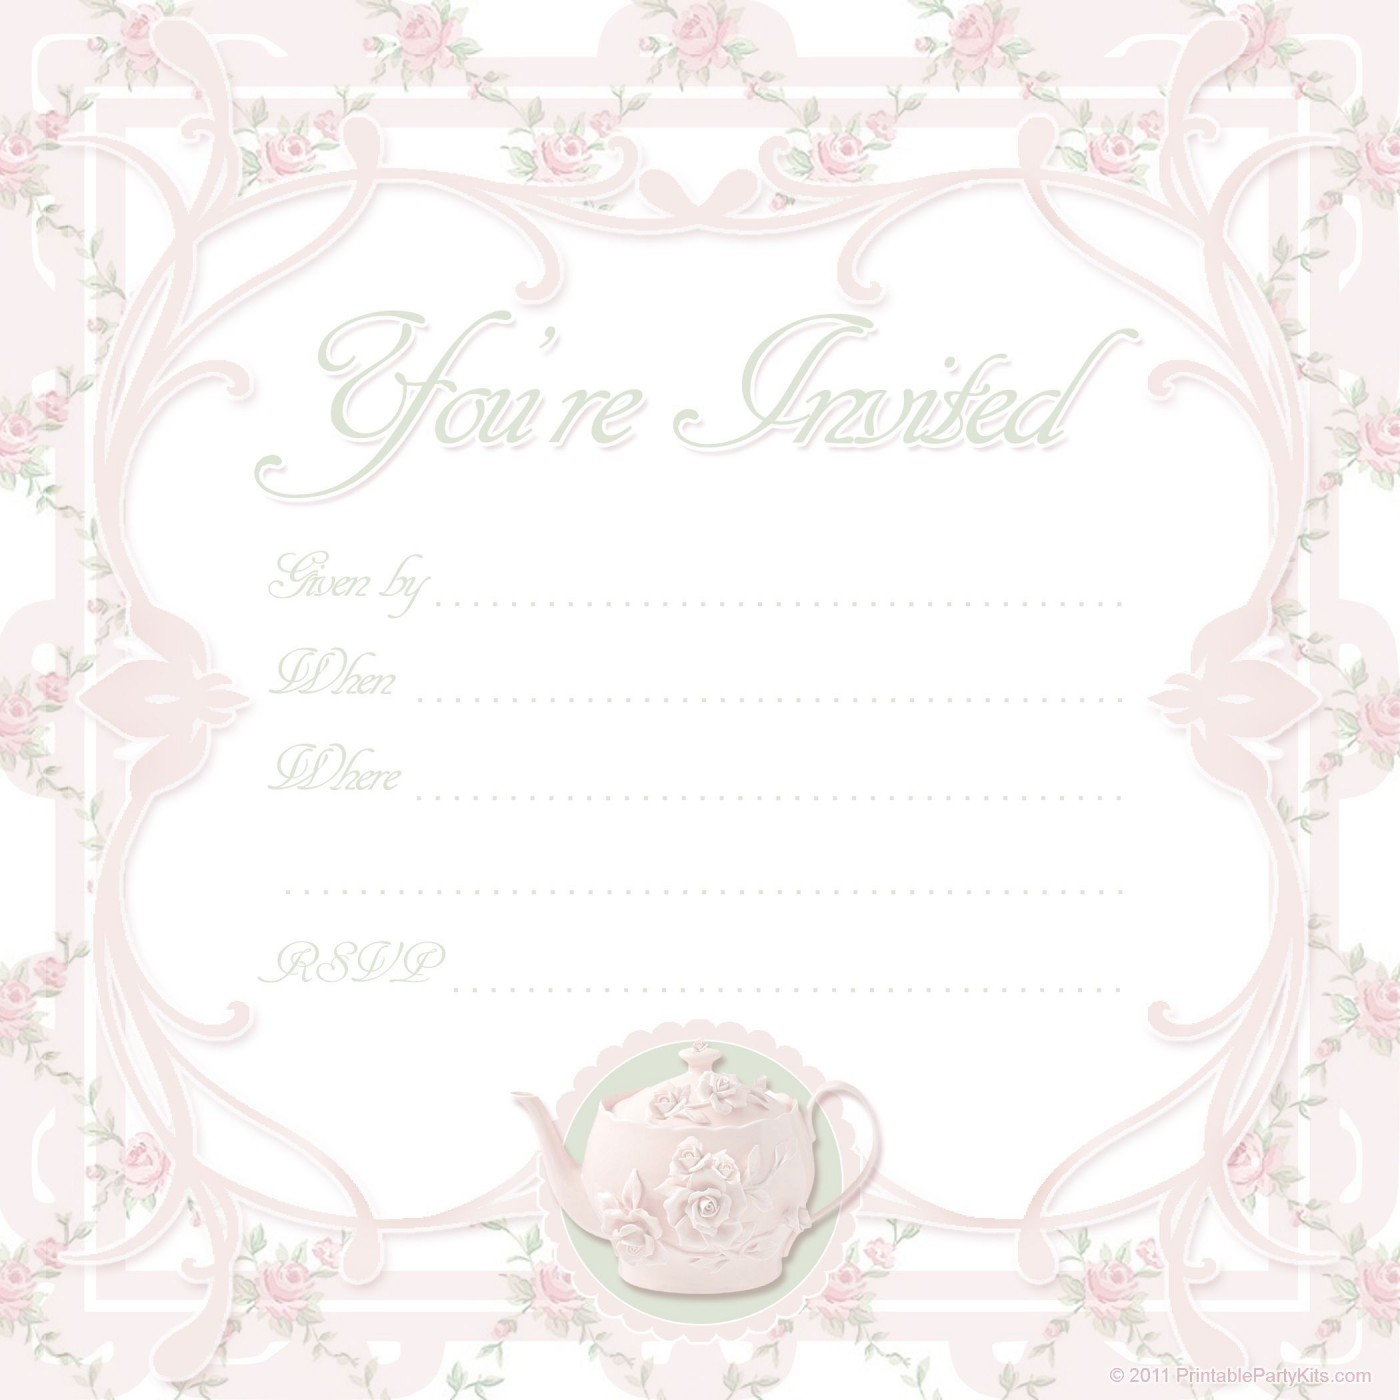 000 Awesome Tea Party Invitation Template High Def  Vintage Free Editable Card Pdf1400